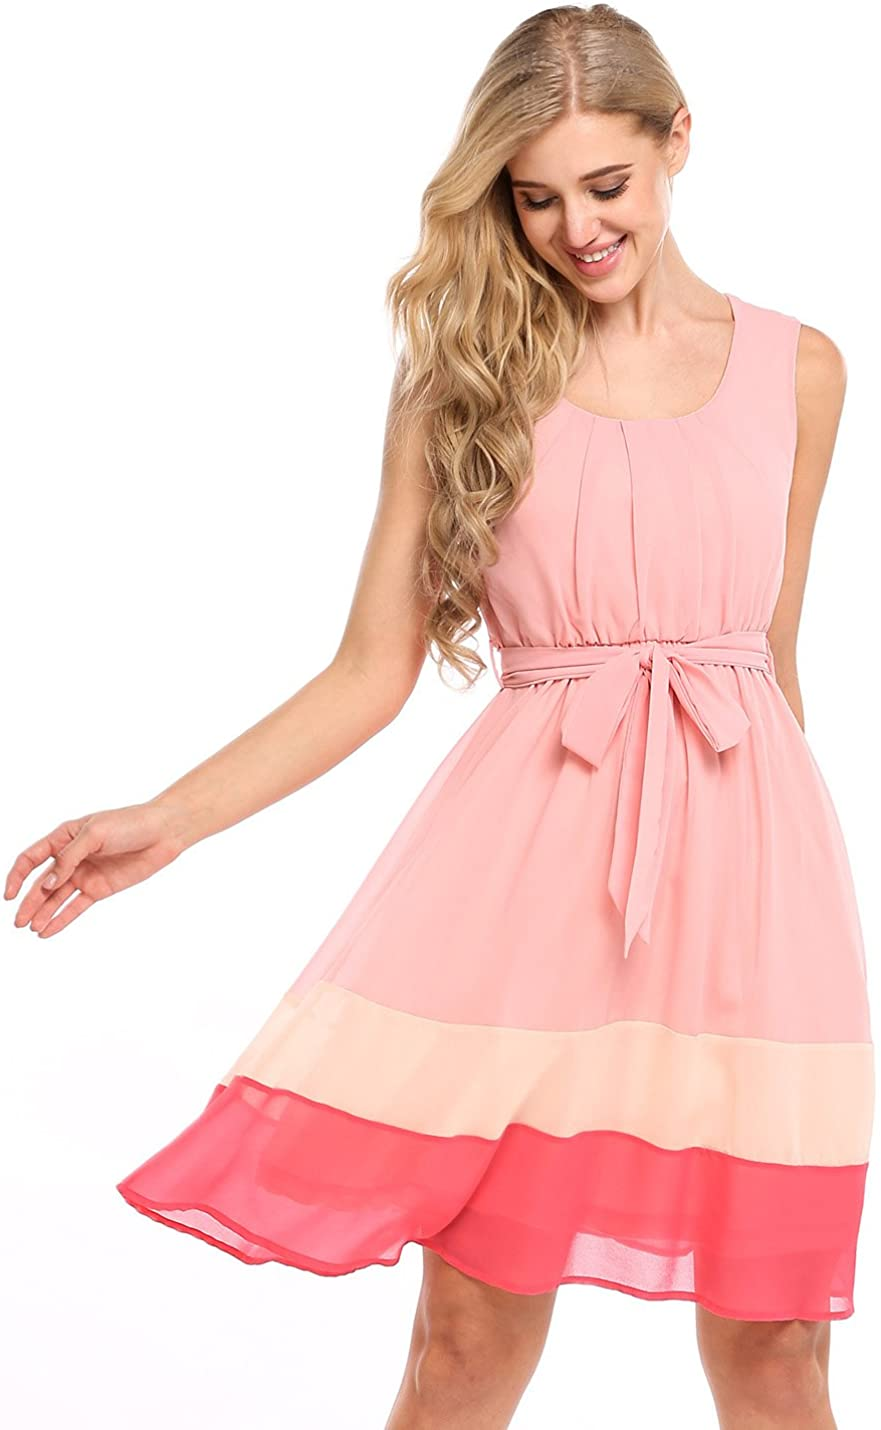 Zeagoo Womens Sweet Sleeveless Fit and Flare Colorblock Casual Chiffon Dress With Belt (Pink, X-Large)